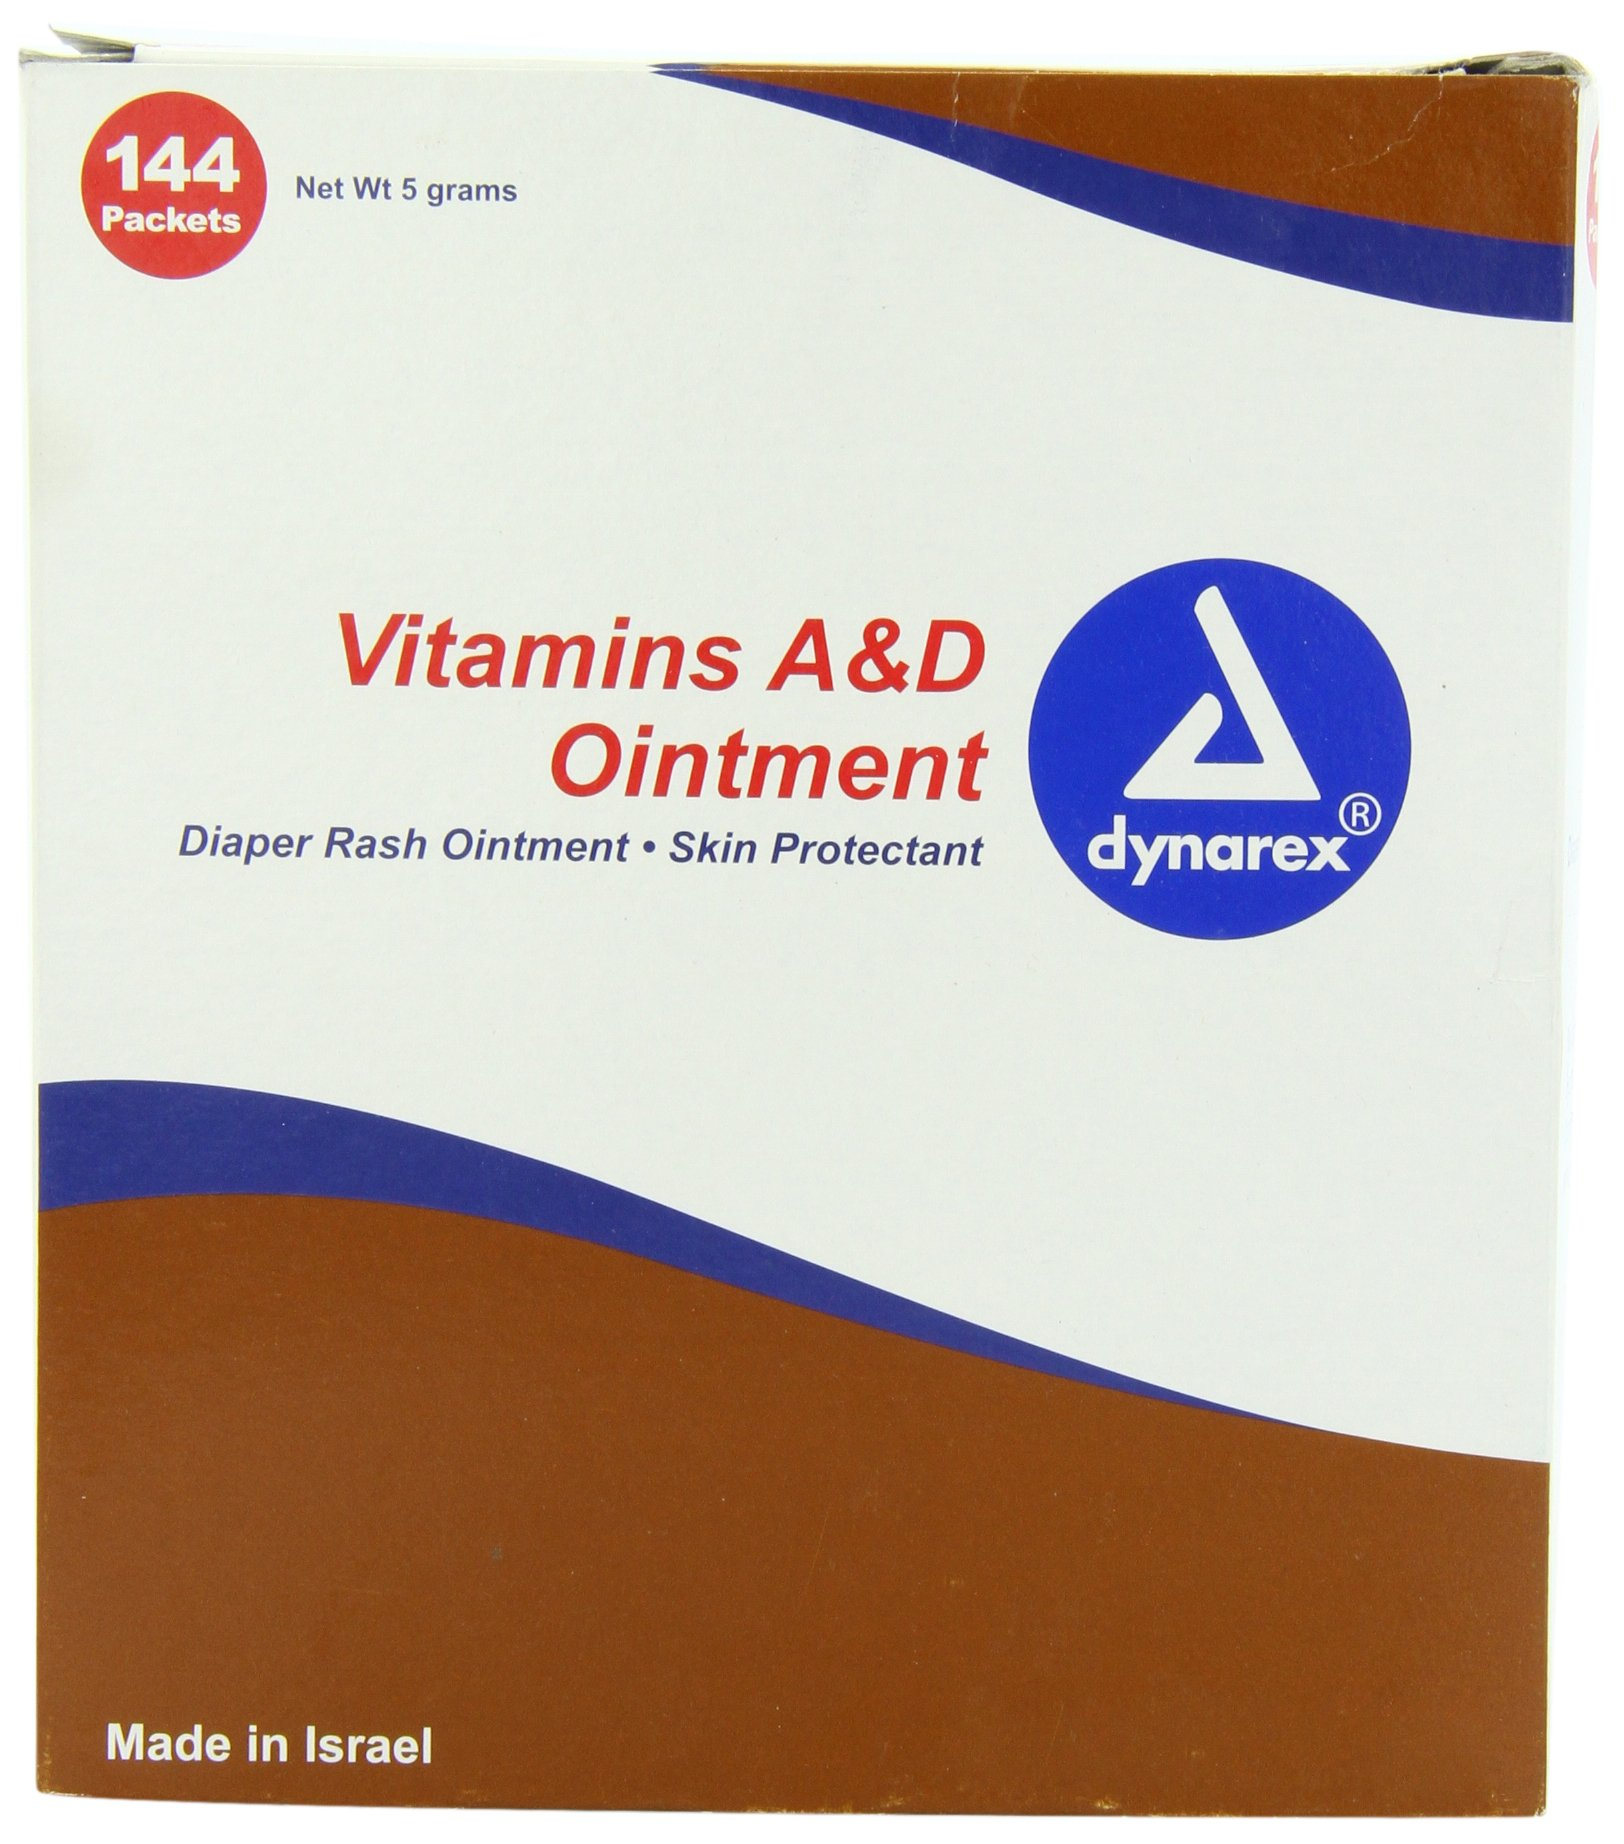 Dynarex Vitamin A & D Ointment Unit Packets 144/box by Dynarex